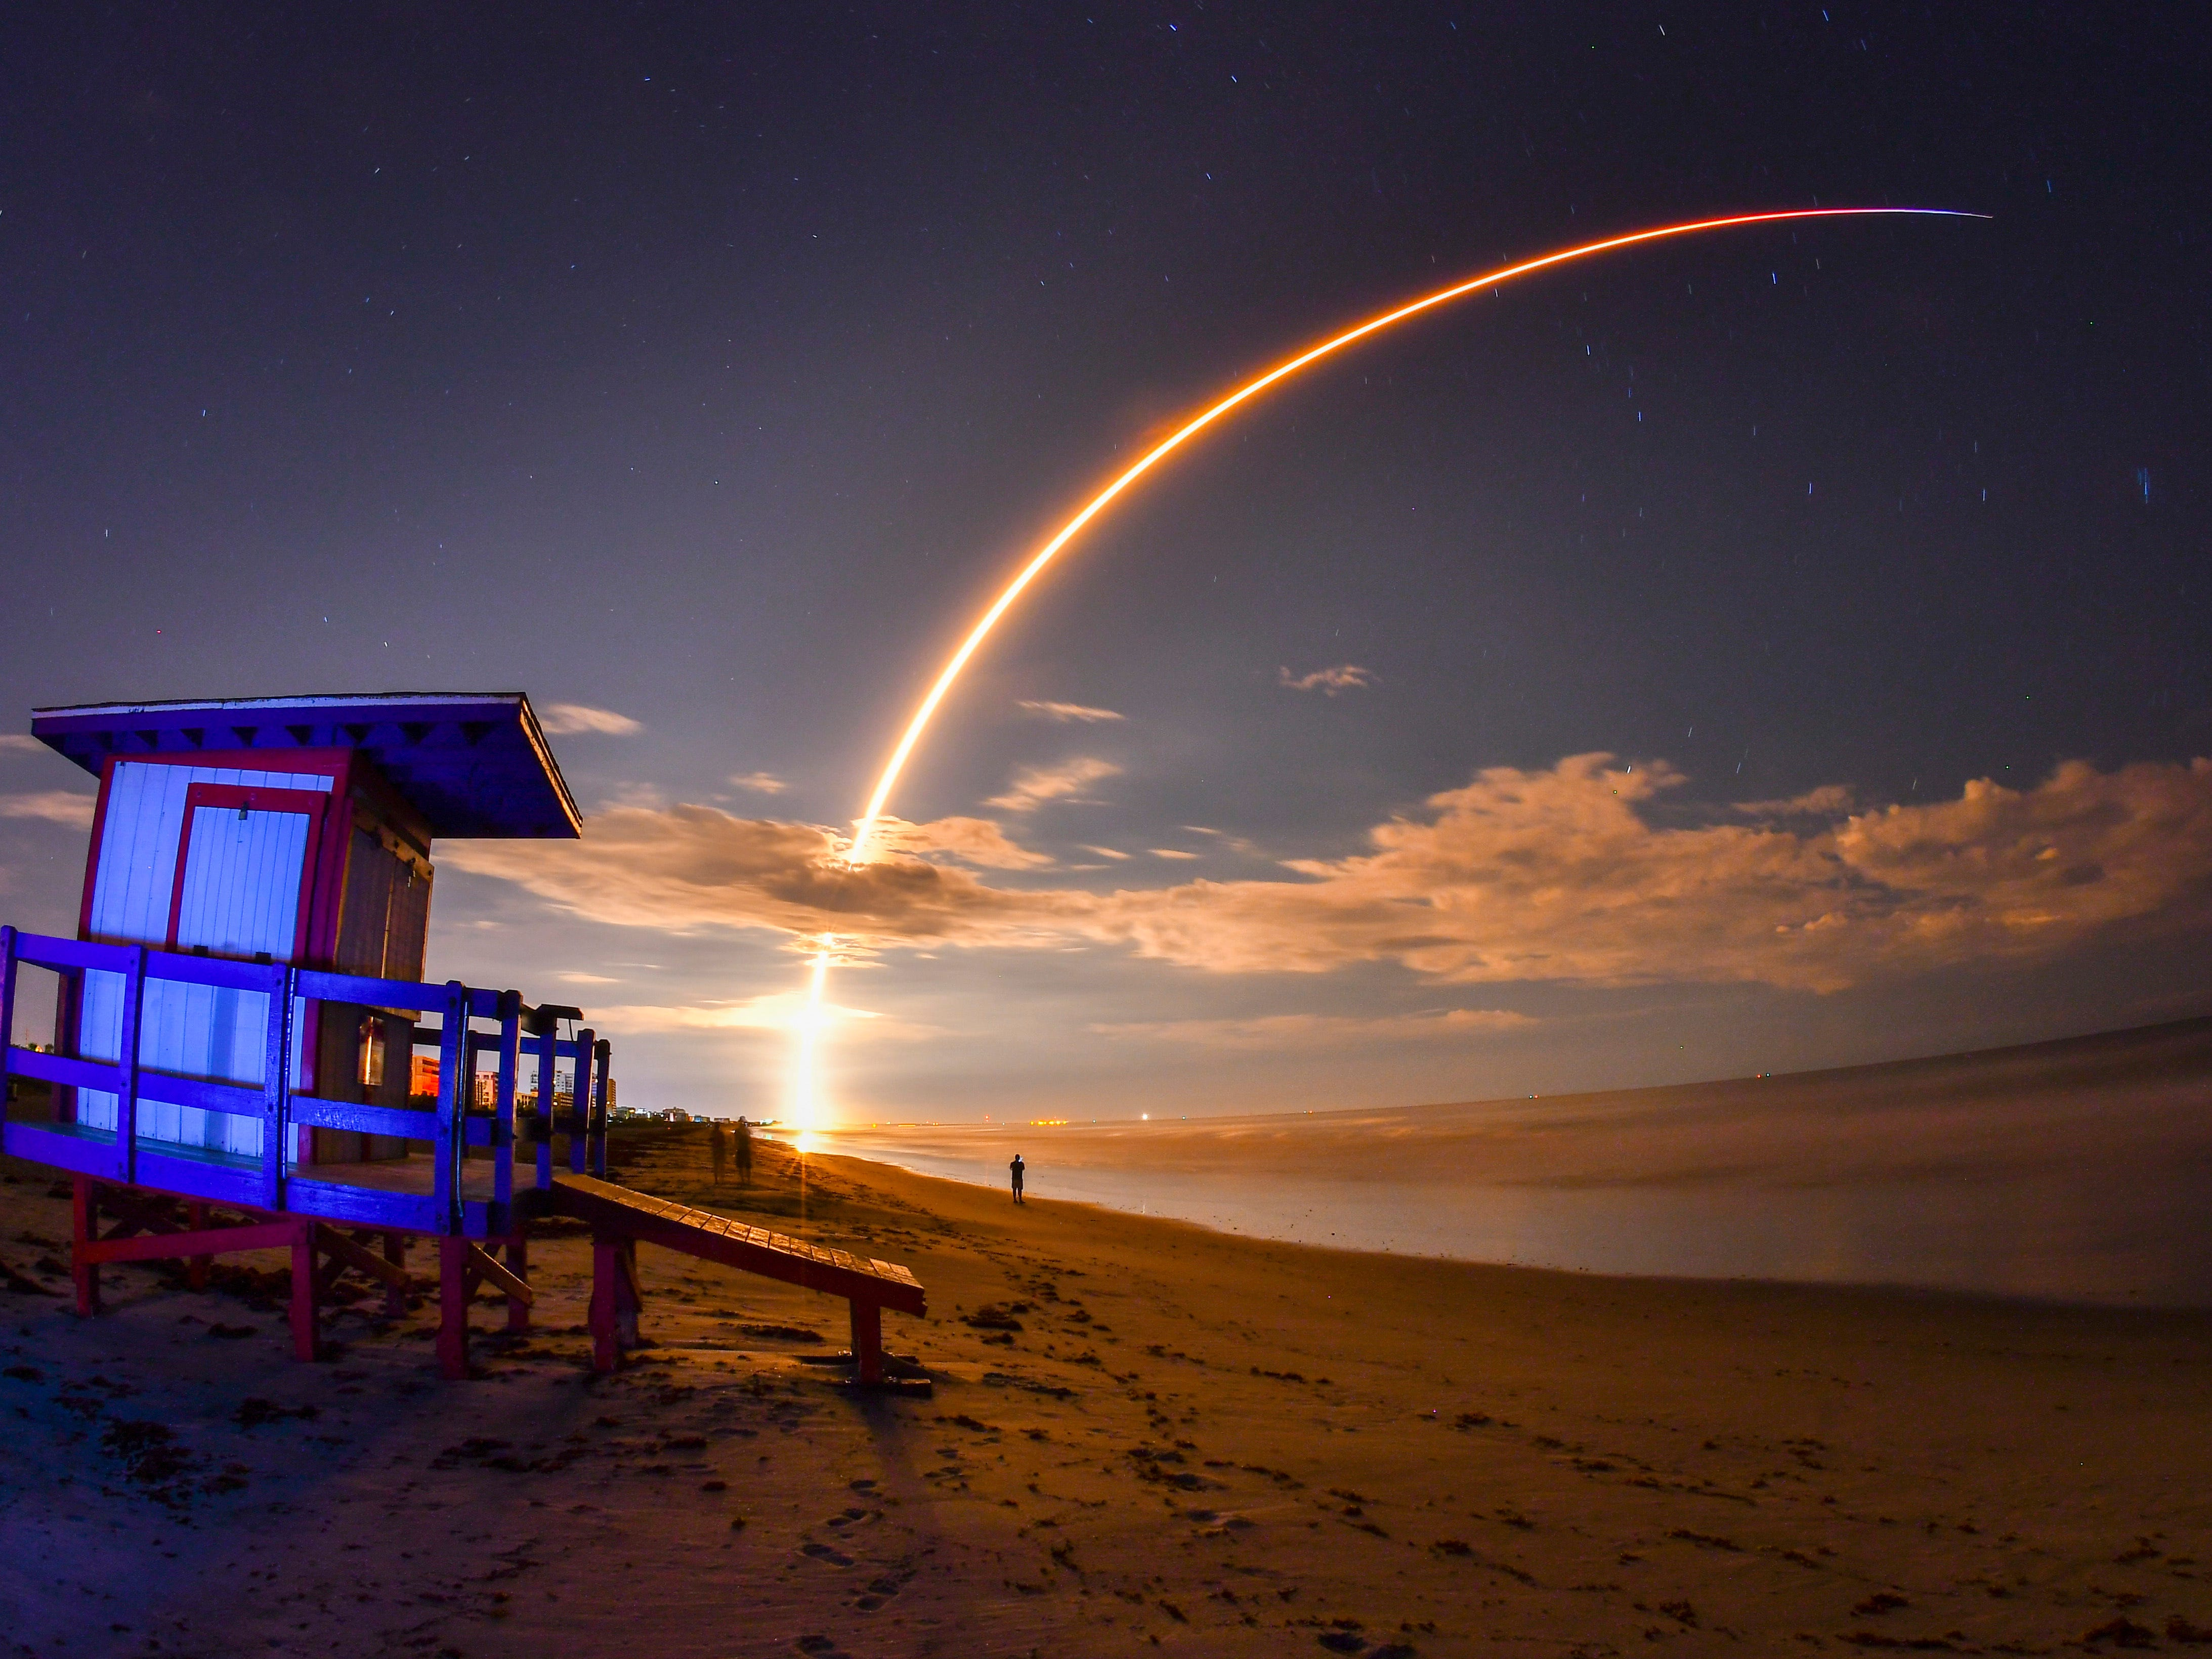 This is a 145-second time exposure of the  launch of Telesat's Telstar 18 Vantage communications satellite in Cocoa Beach, Florida, early Monday, Sept. 10, 2018.